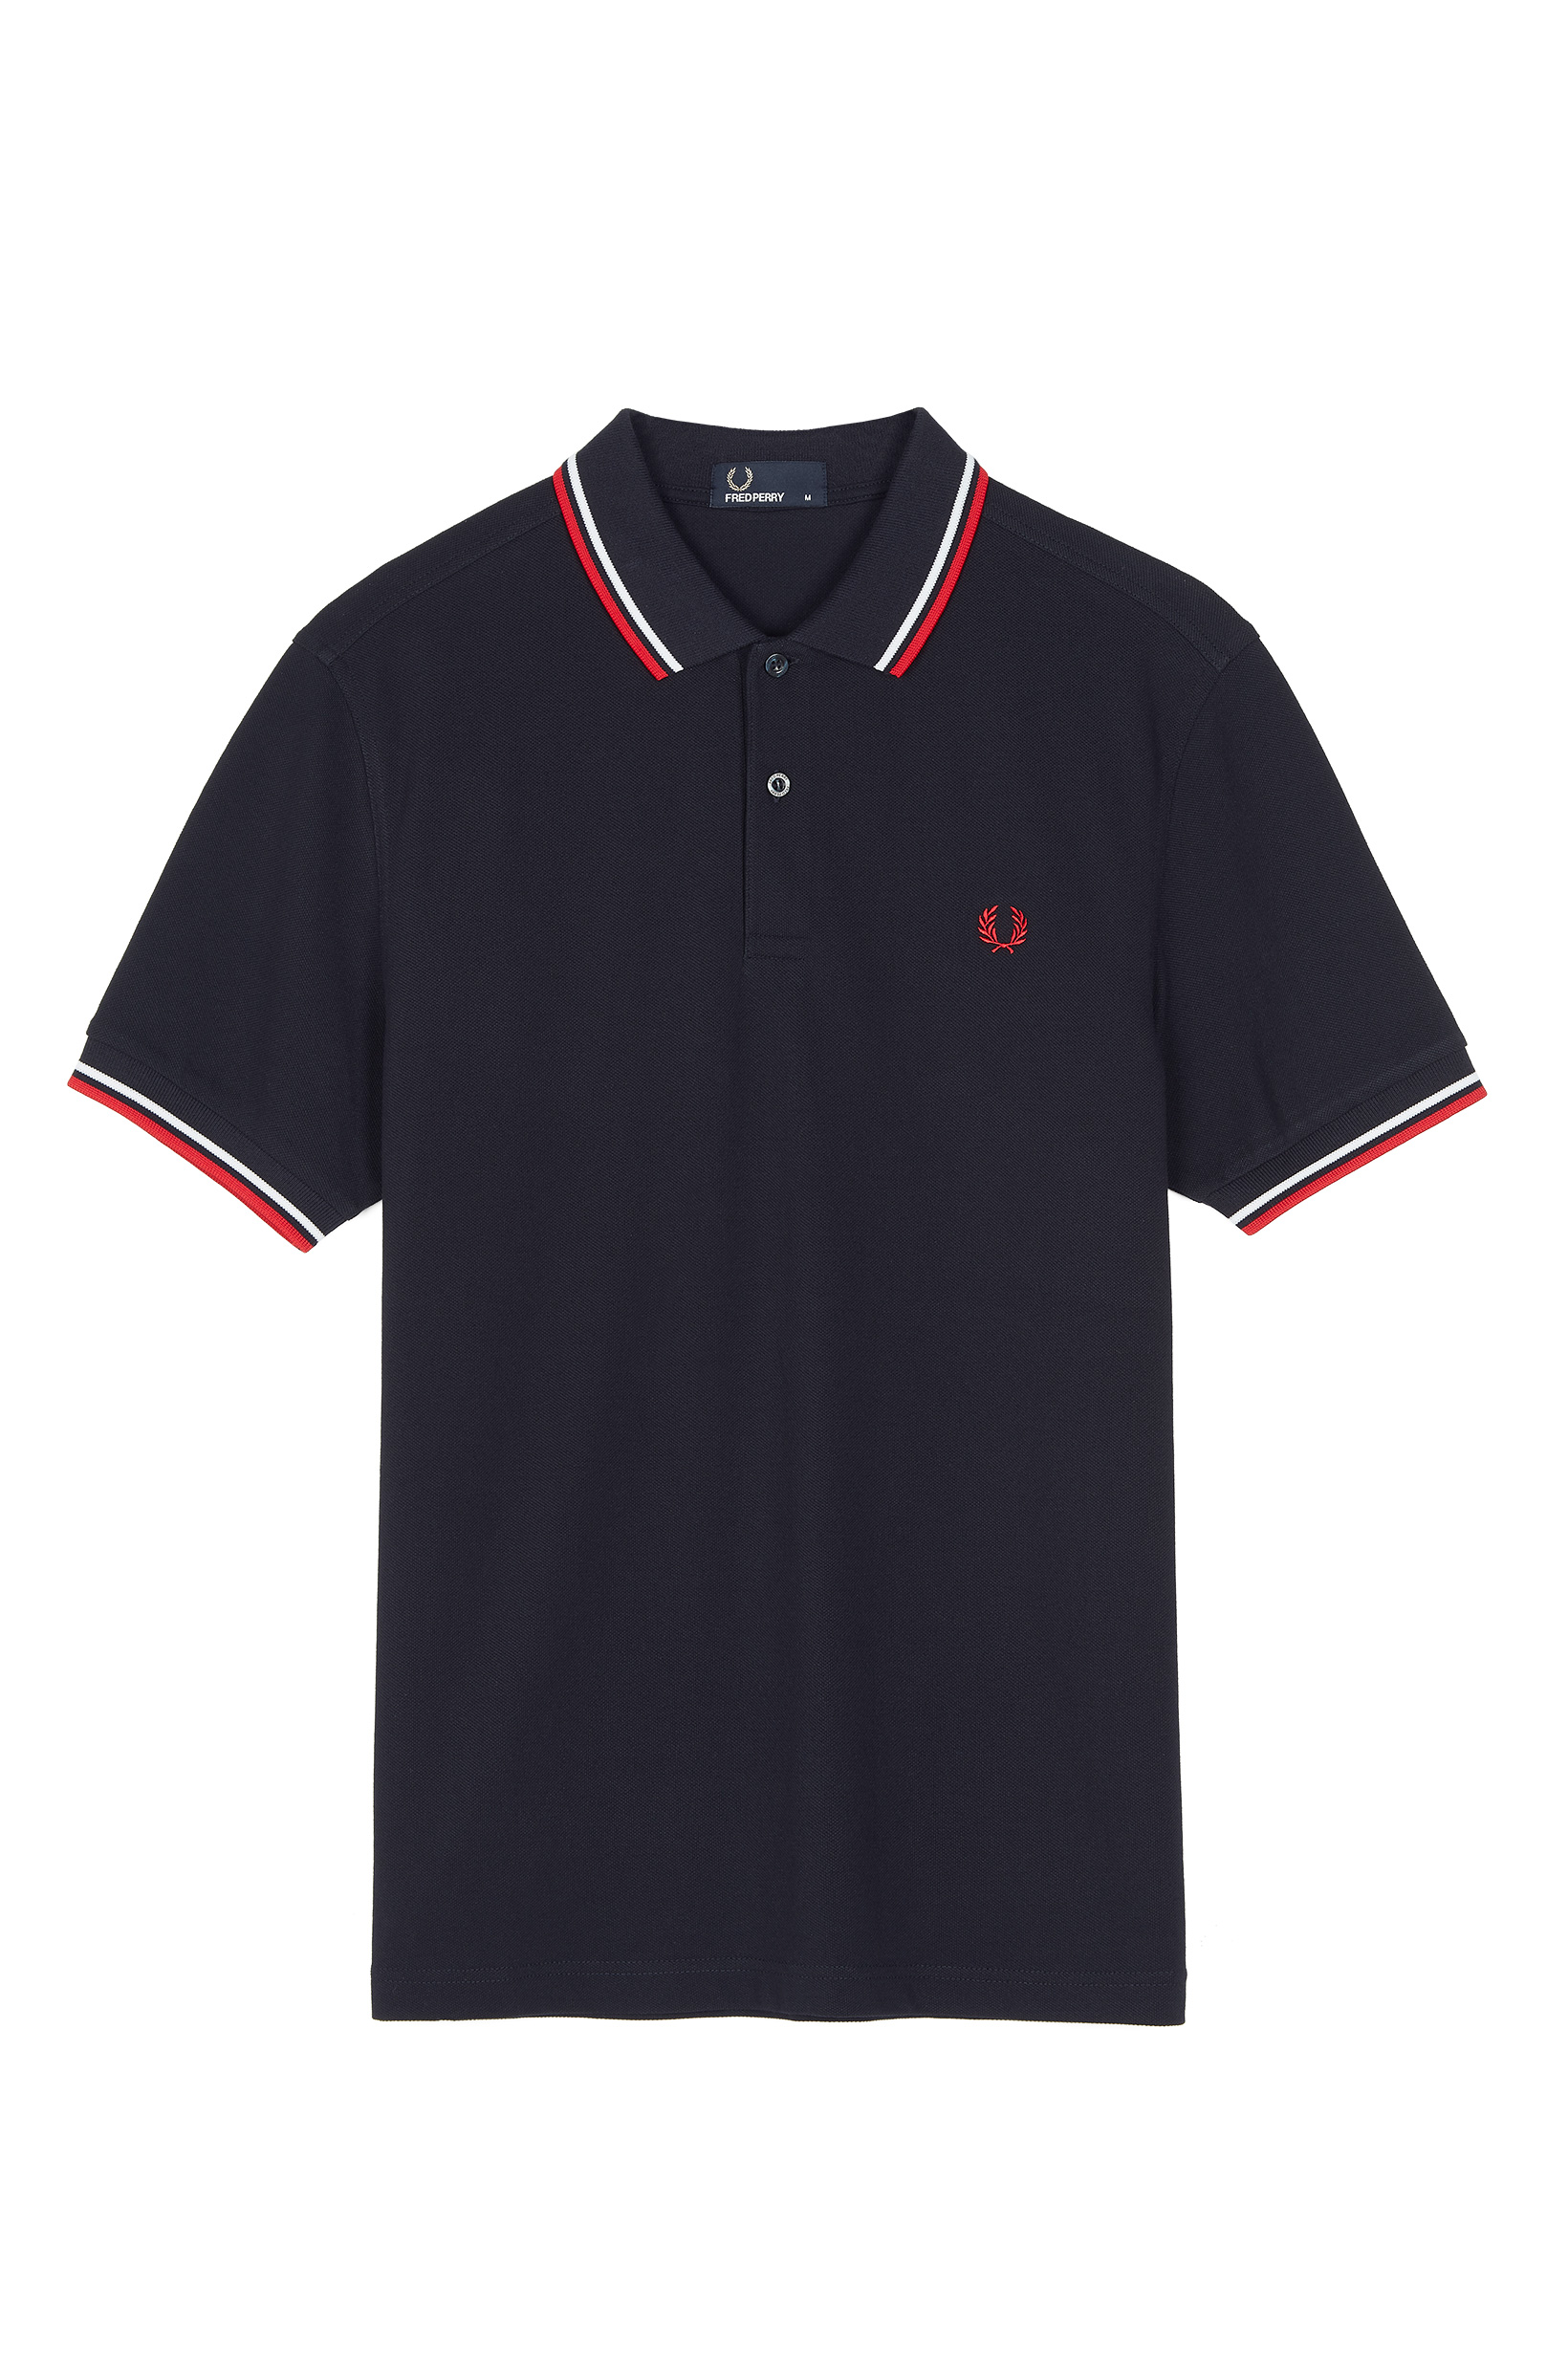 Fred Perry - TWIN TIPPED POLO SHIRT - Navy/White